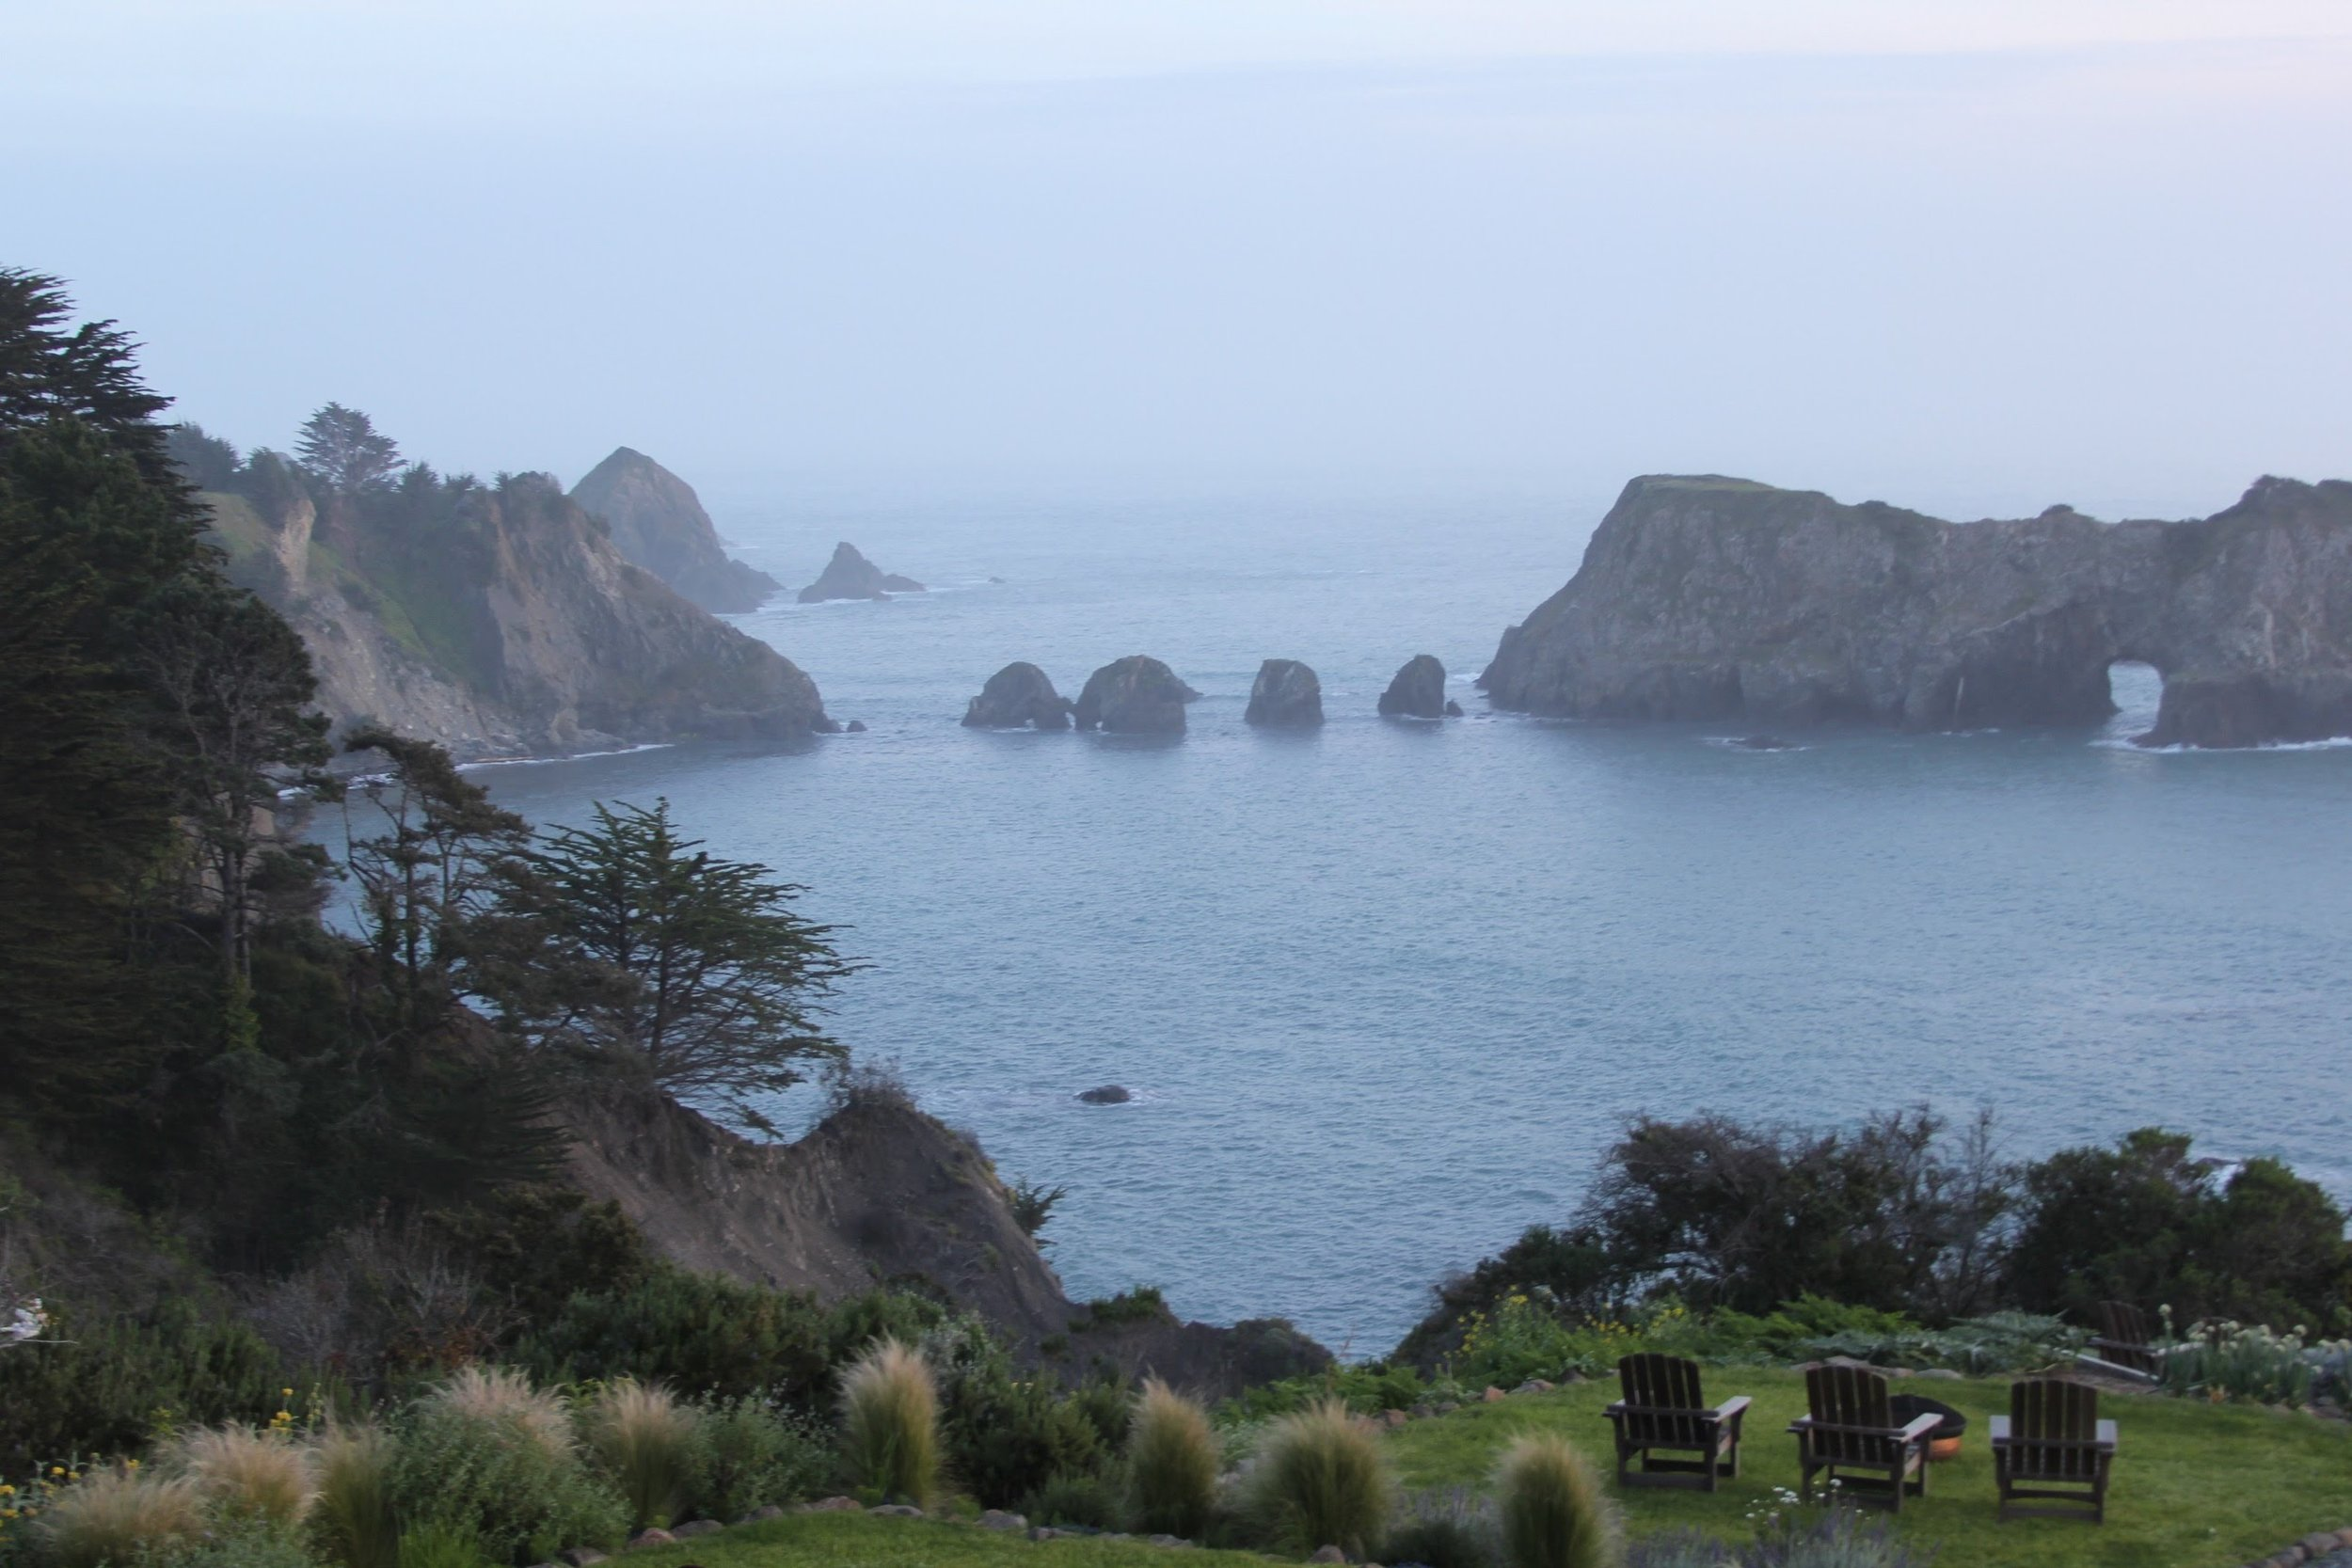 The view of the coast from The Harbor House Inn deck.